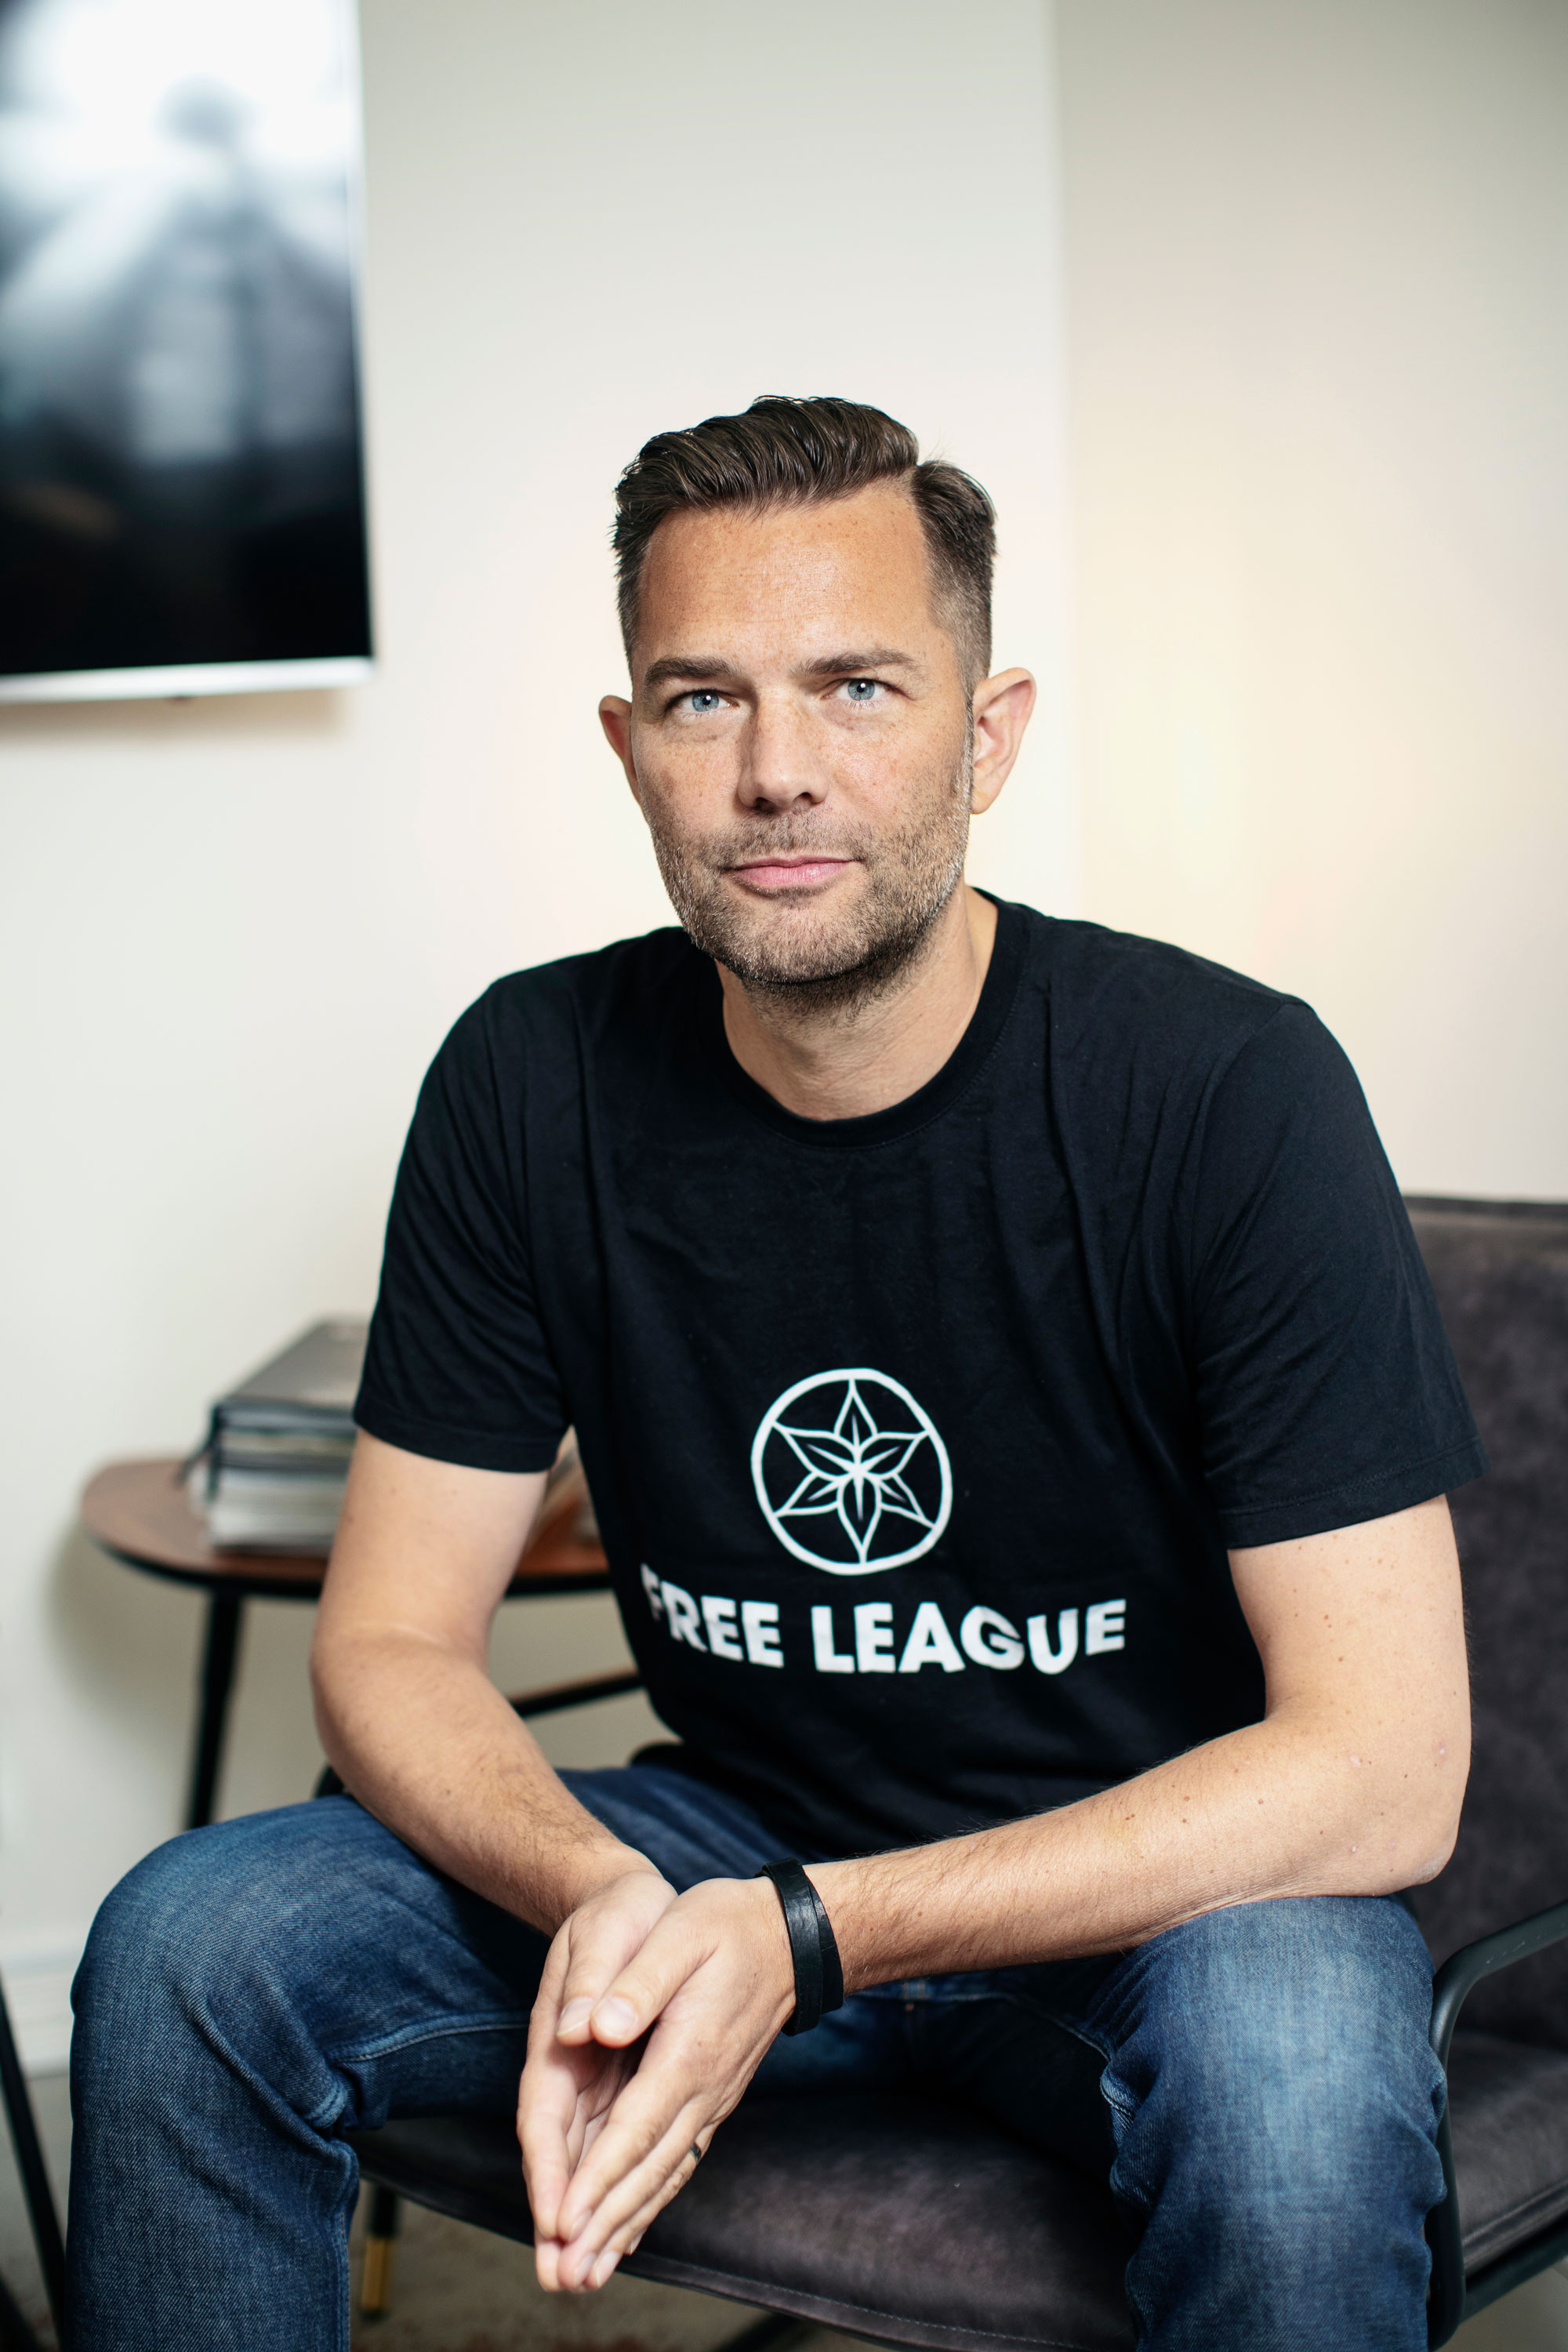 Tomas Härenstam, Free League